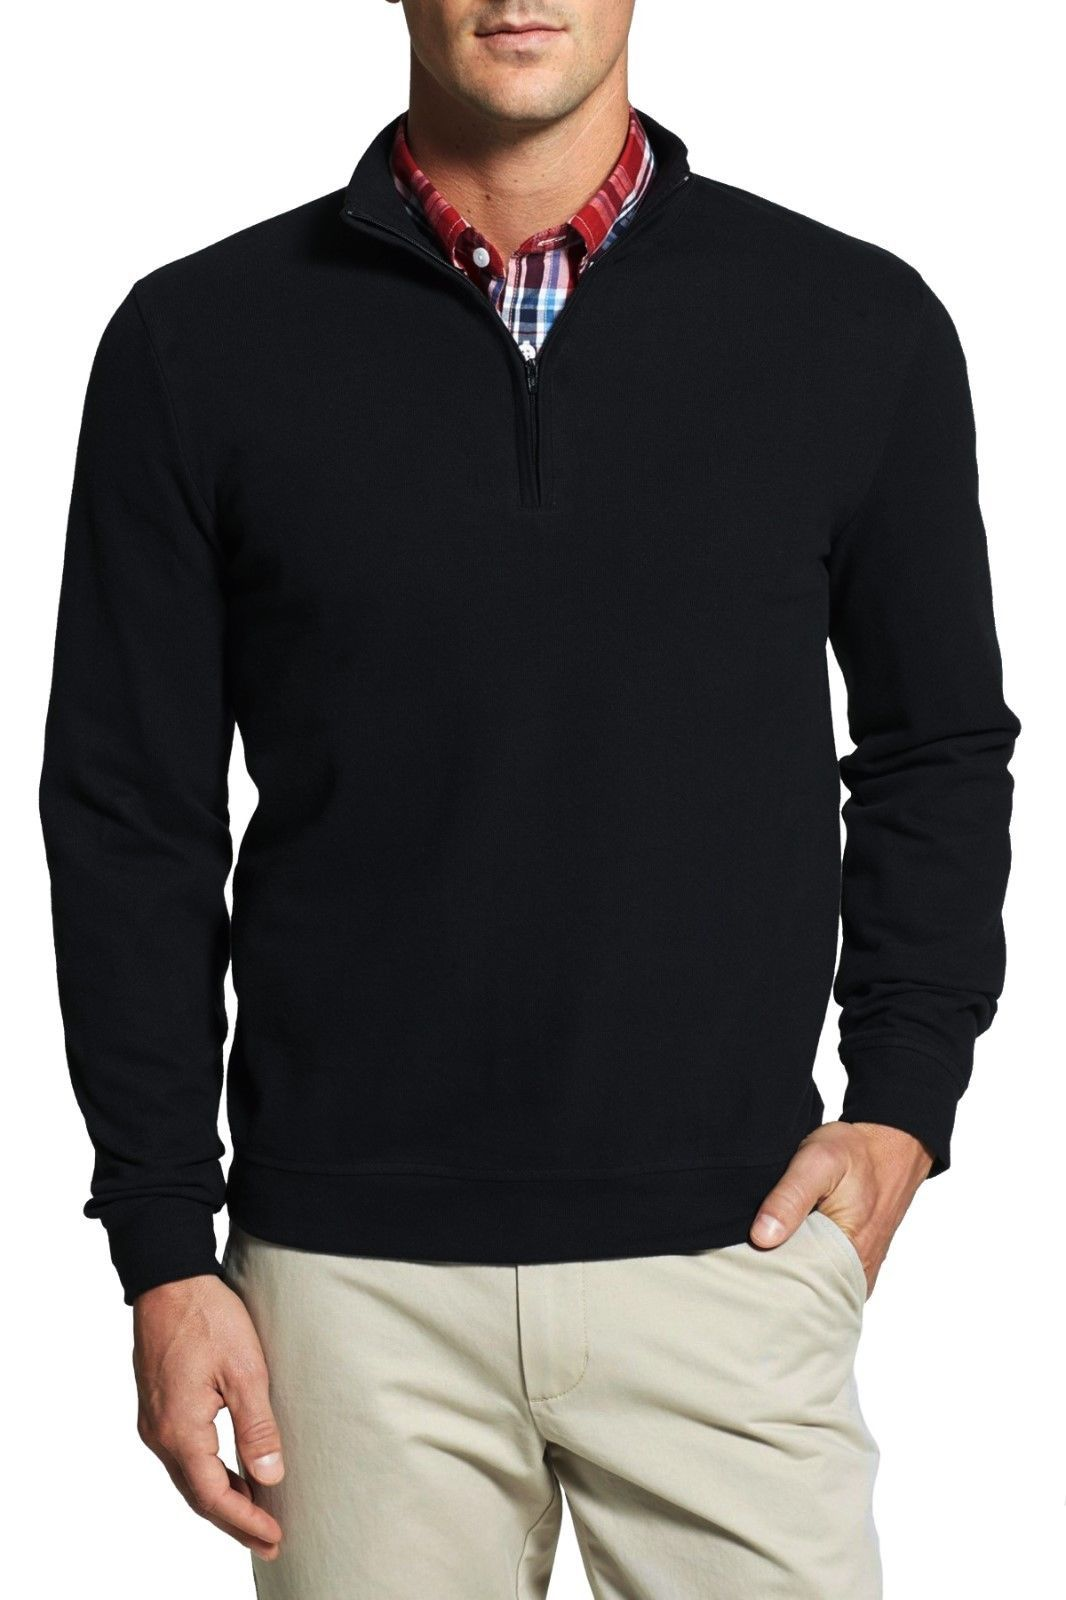 NORDSTROM 1/4 Zip Mock Neck Cotton Pullover Sweater in Black ...